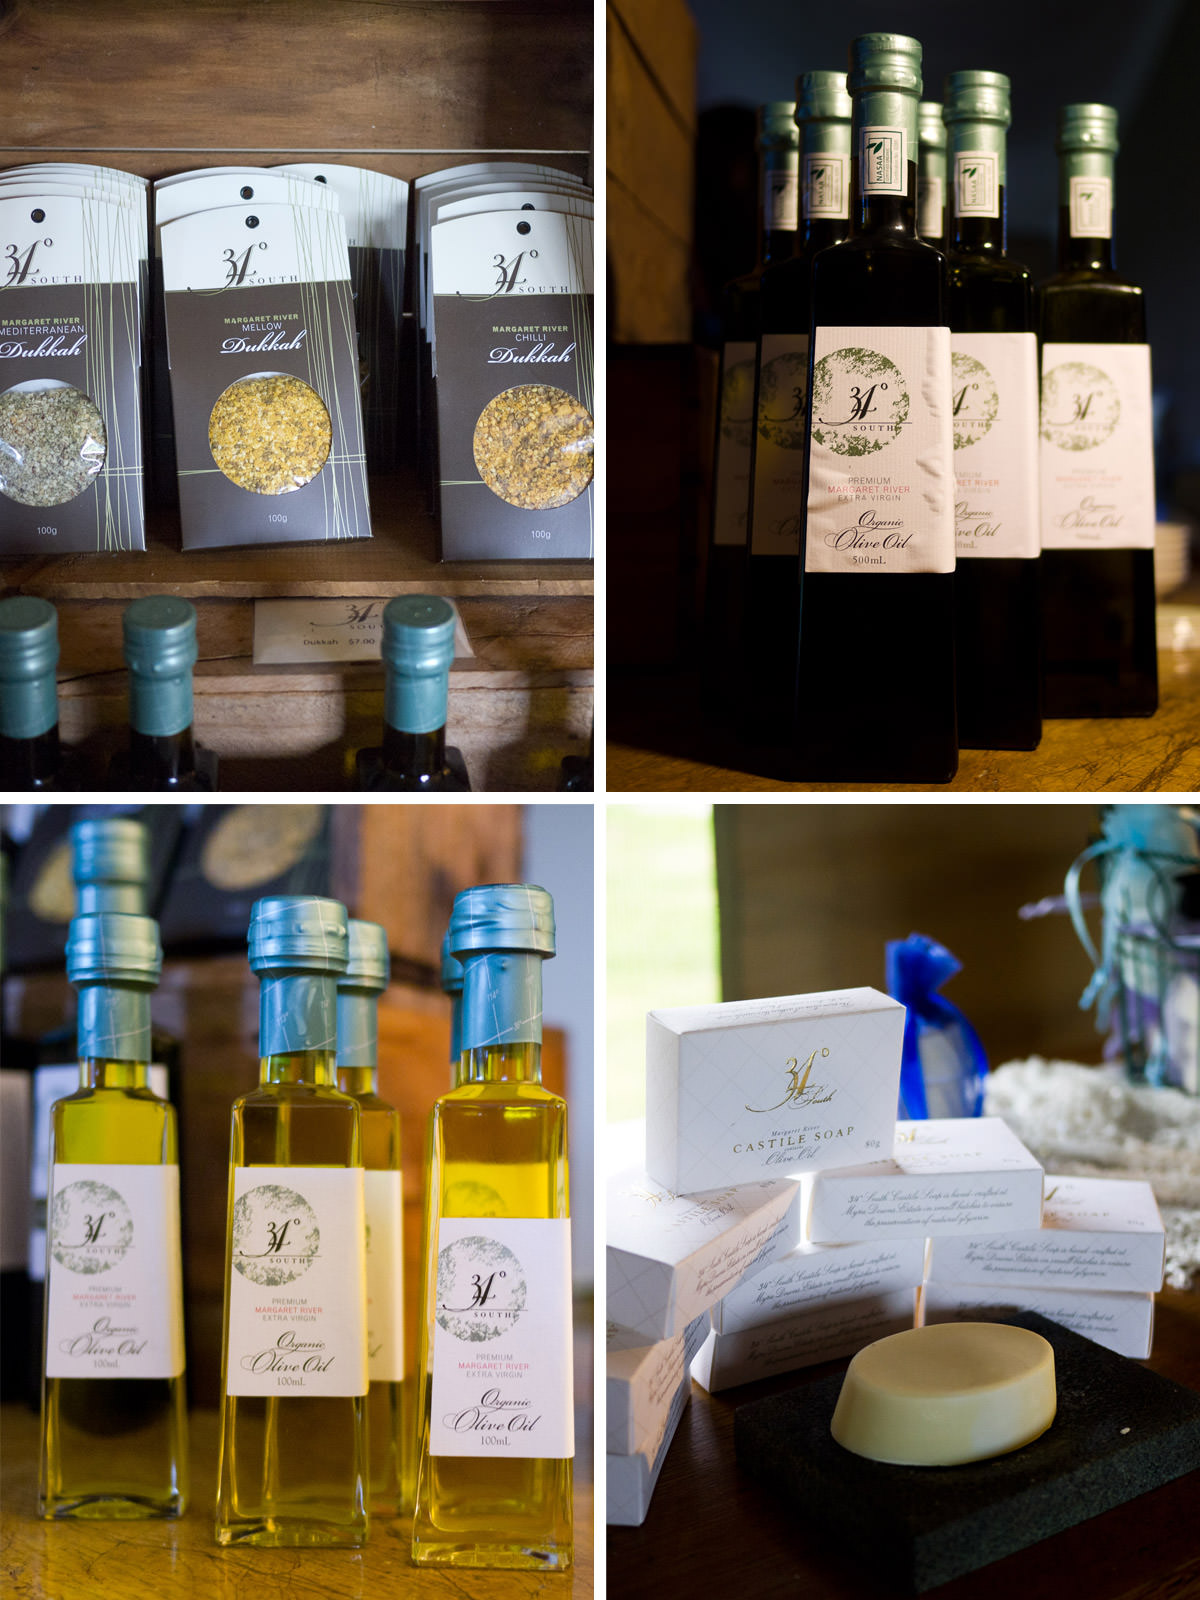 34 Degrees South olive oil products